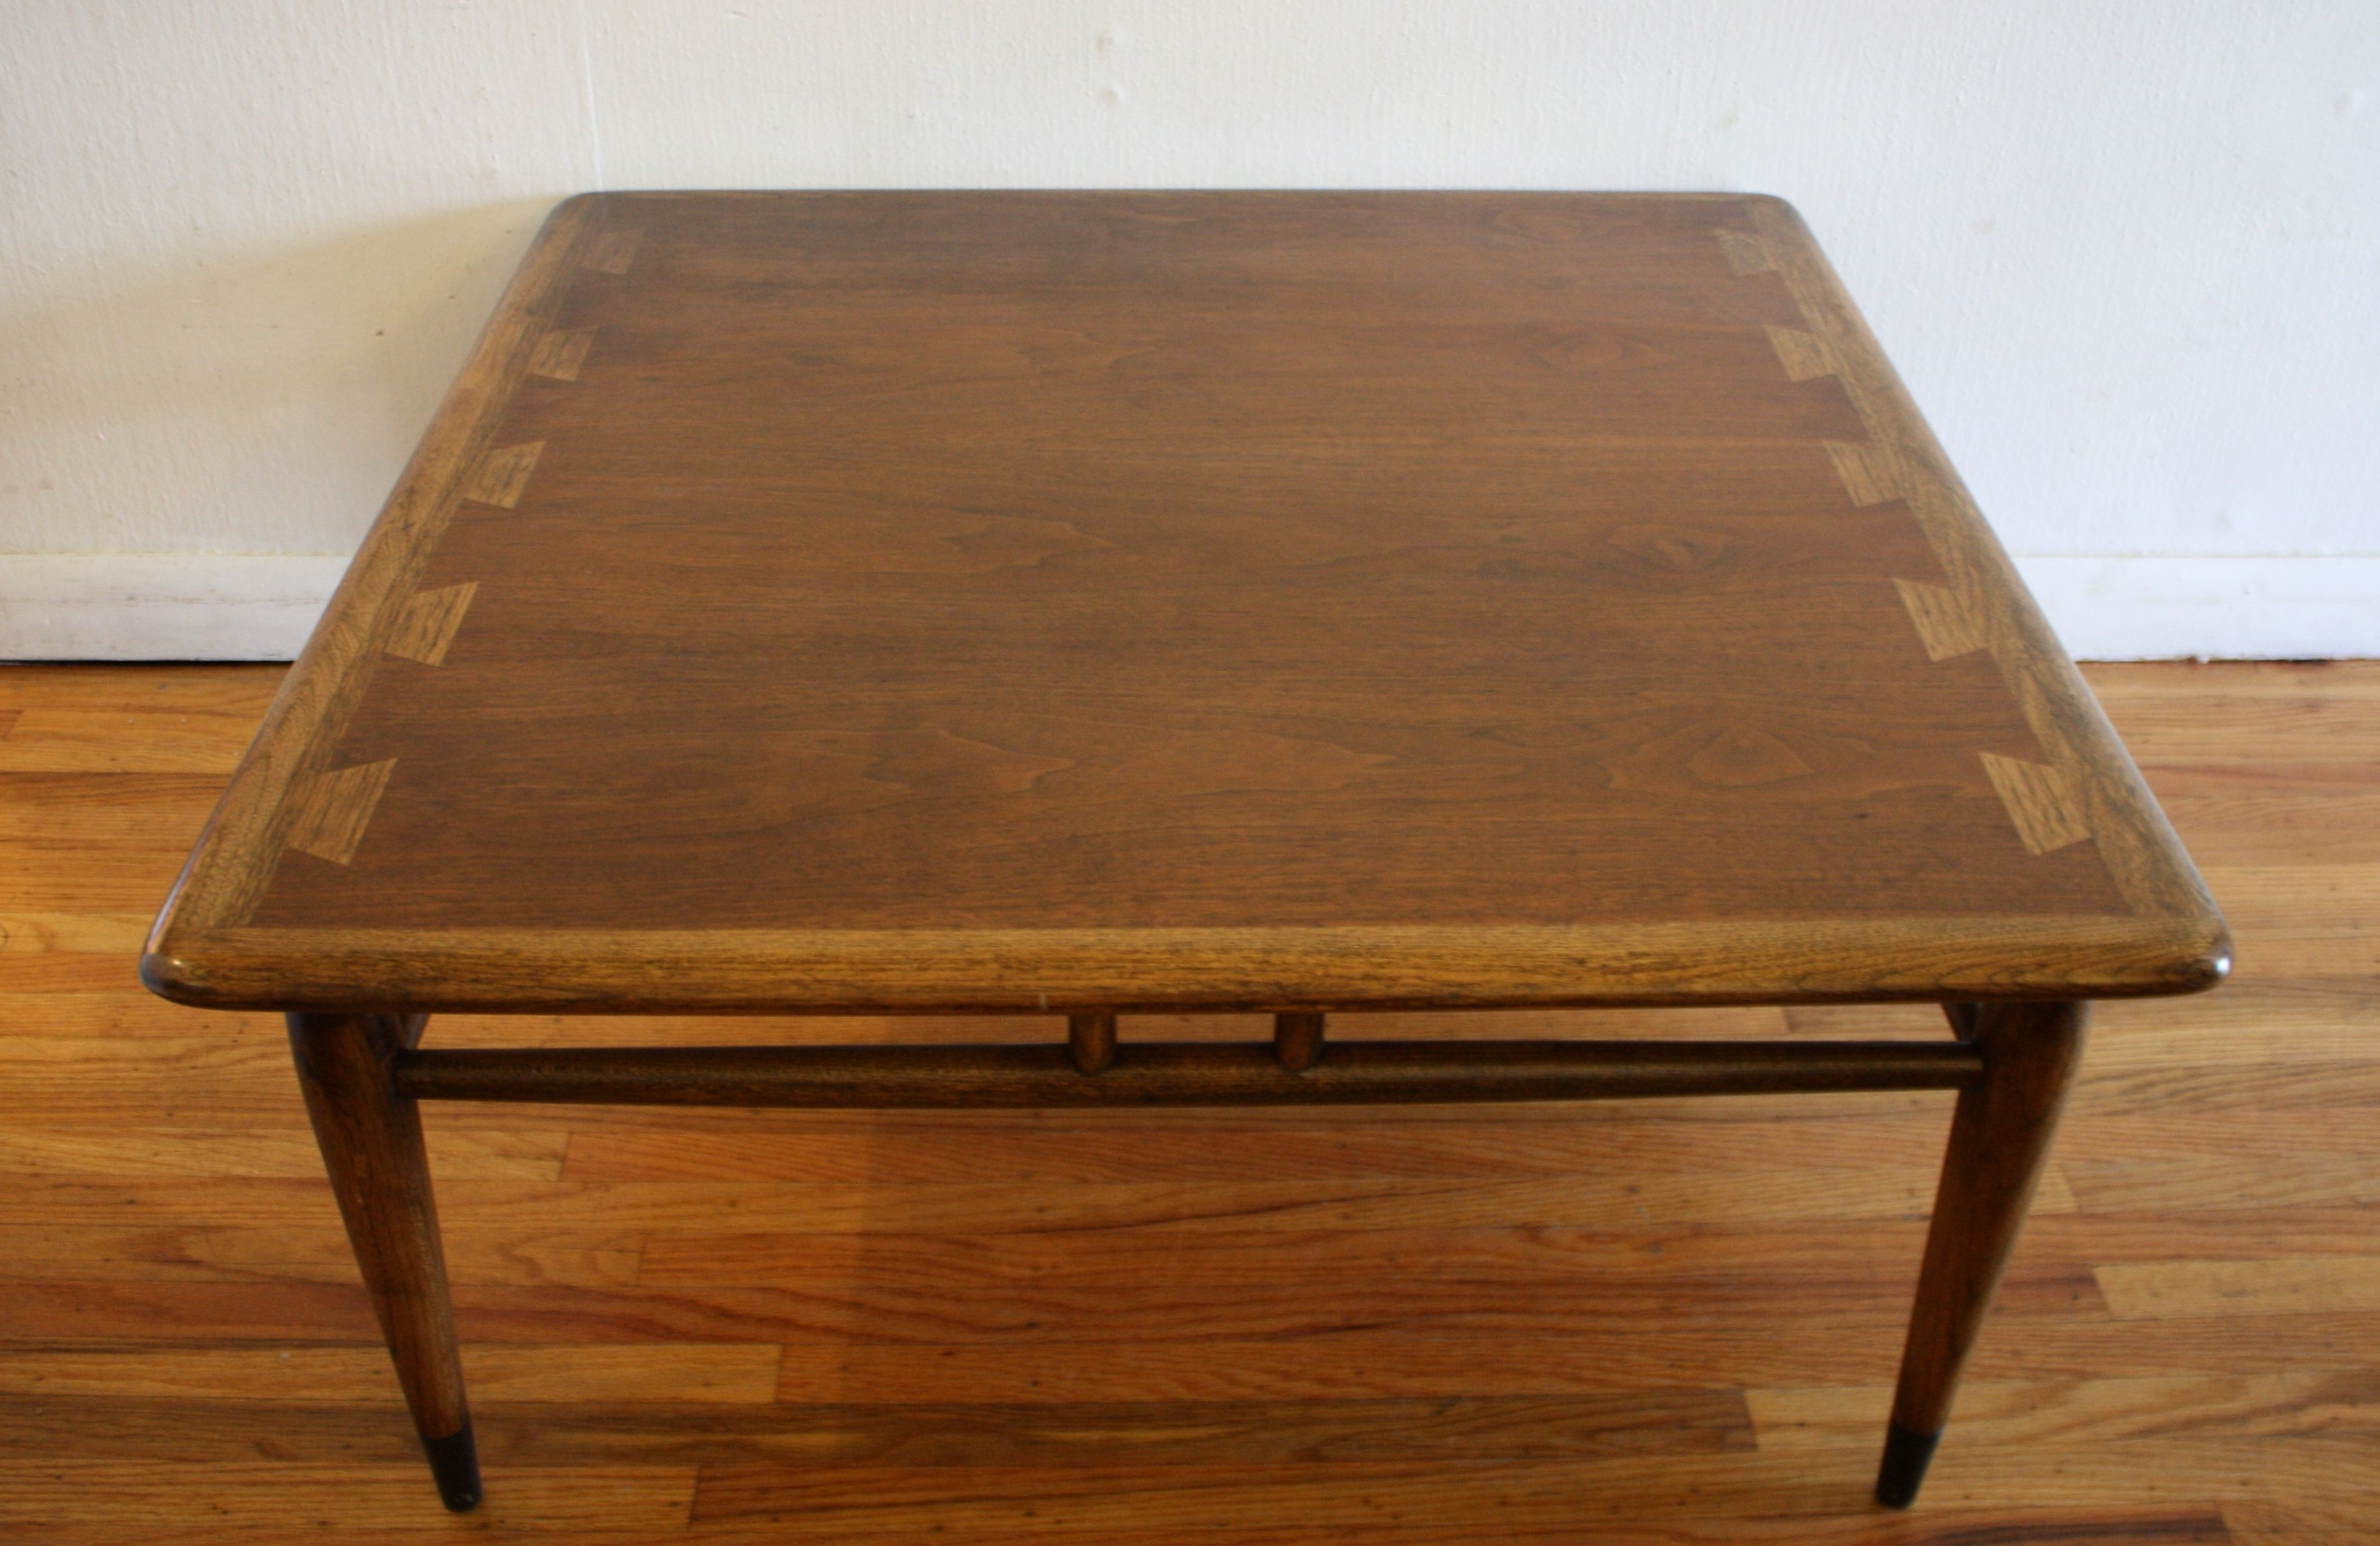 Popular Vintage Wood Coffee Tables Pertaining To Mid Century Modern Lane Acclaim Square Coffee Table Ked Vintage (View 16 of 20)